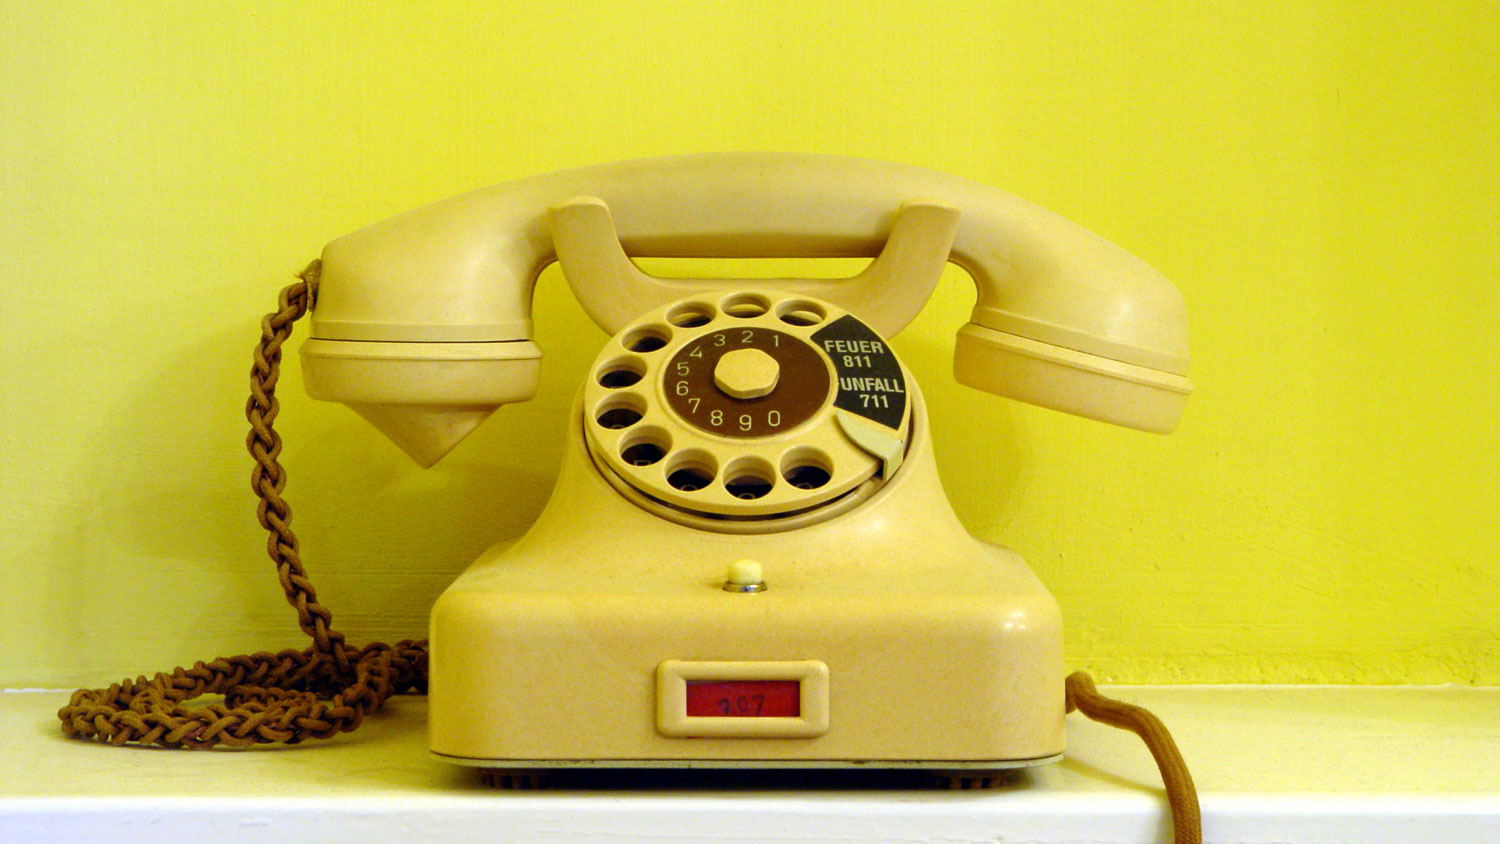 Cellphone service surpasses that of landlines in US households for the first time